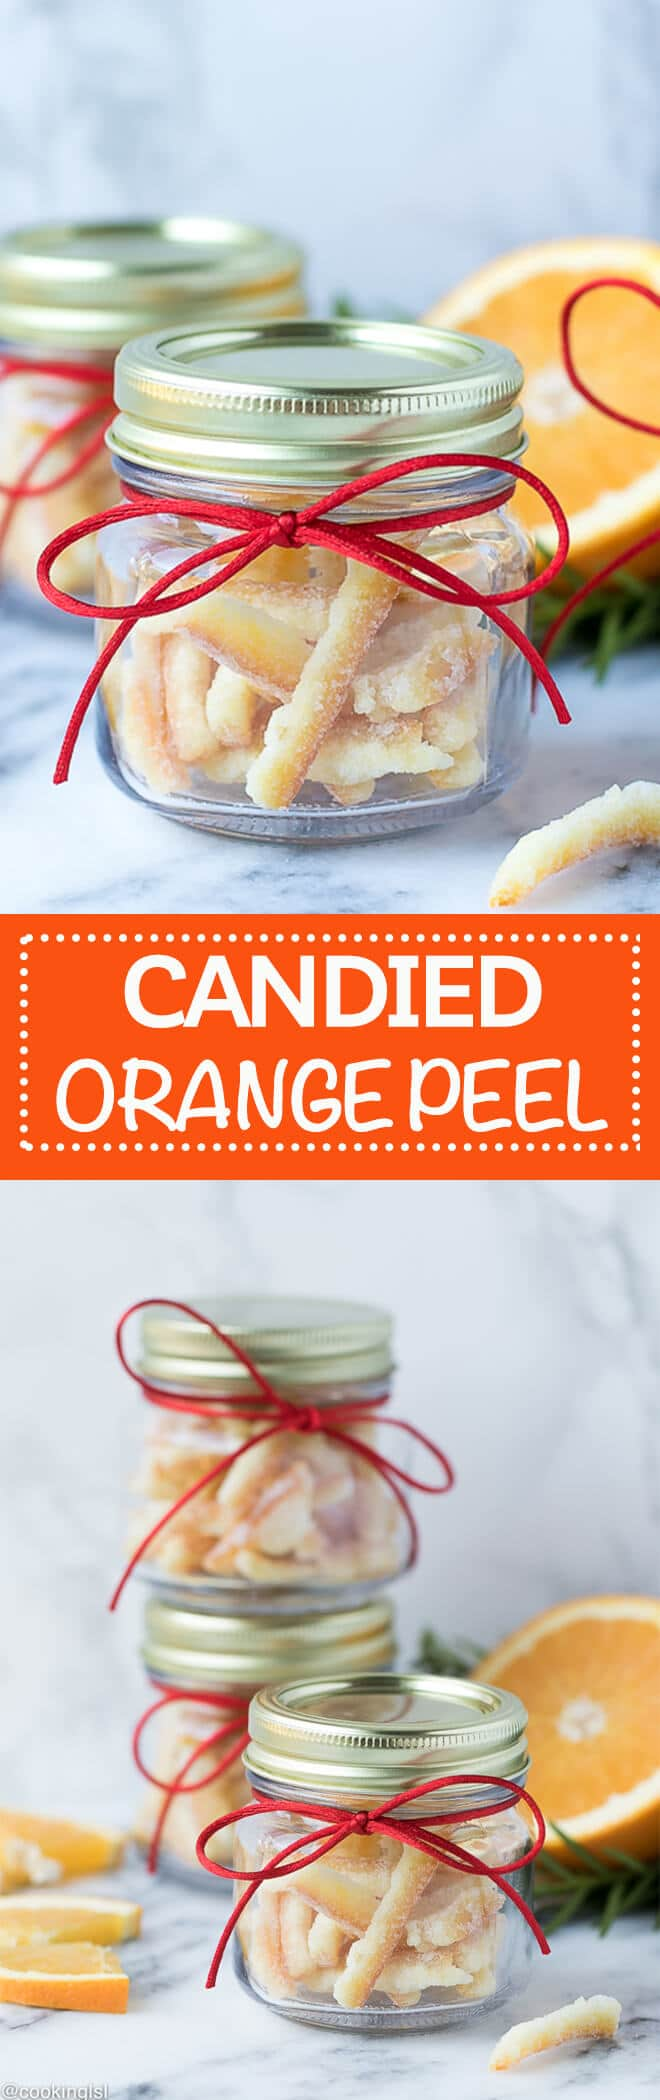 Easy Candied Orange Peel Recipe - very easy to make, great for snack, garnish and baking. Perfect for the holidays! #Christmas #ediblegift #giftinajar